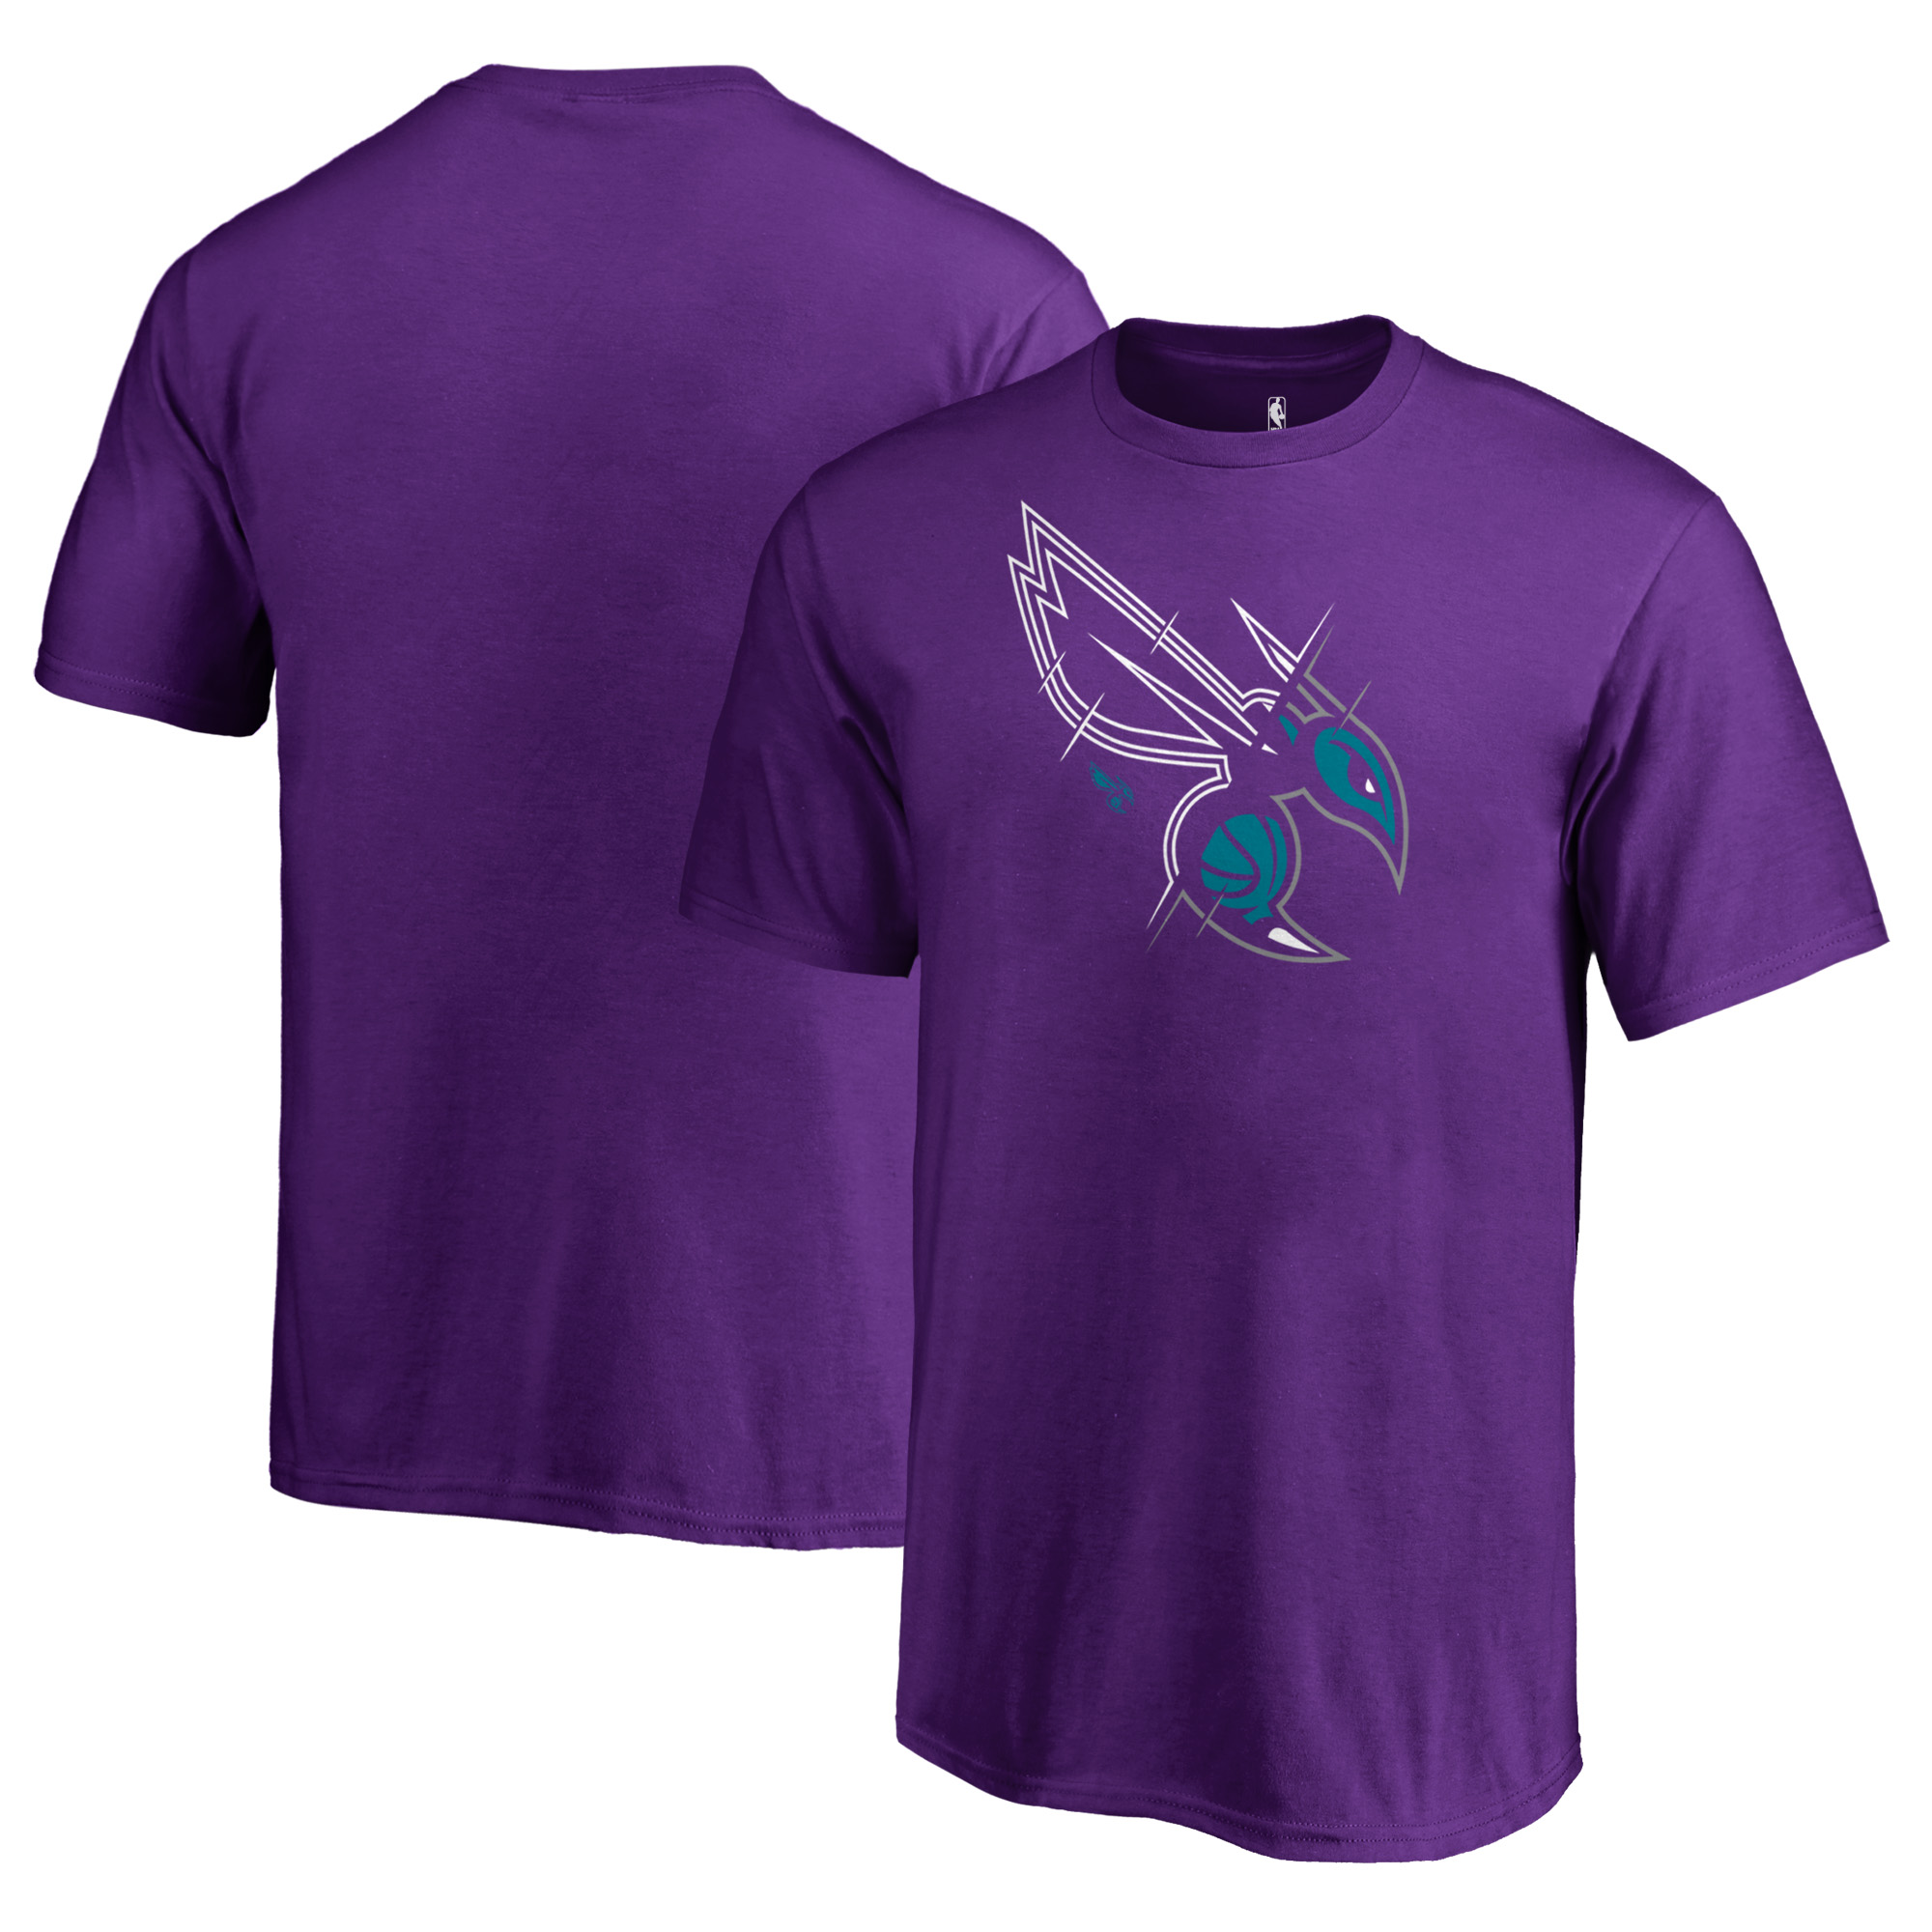 Charlotte Hornets Fanatics Branded Youth X-Ray T-Shirt - Purple